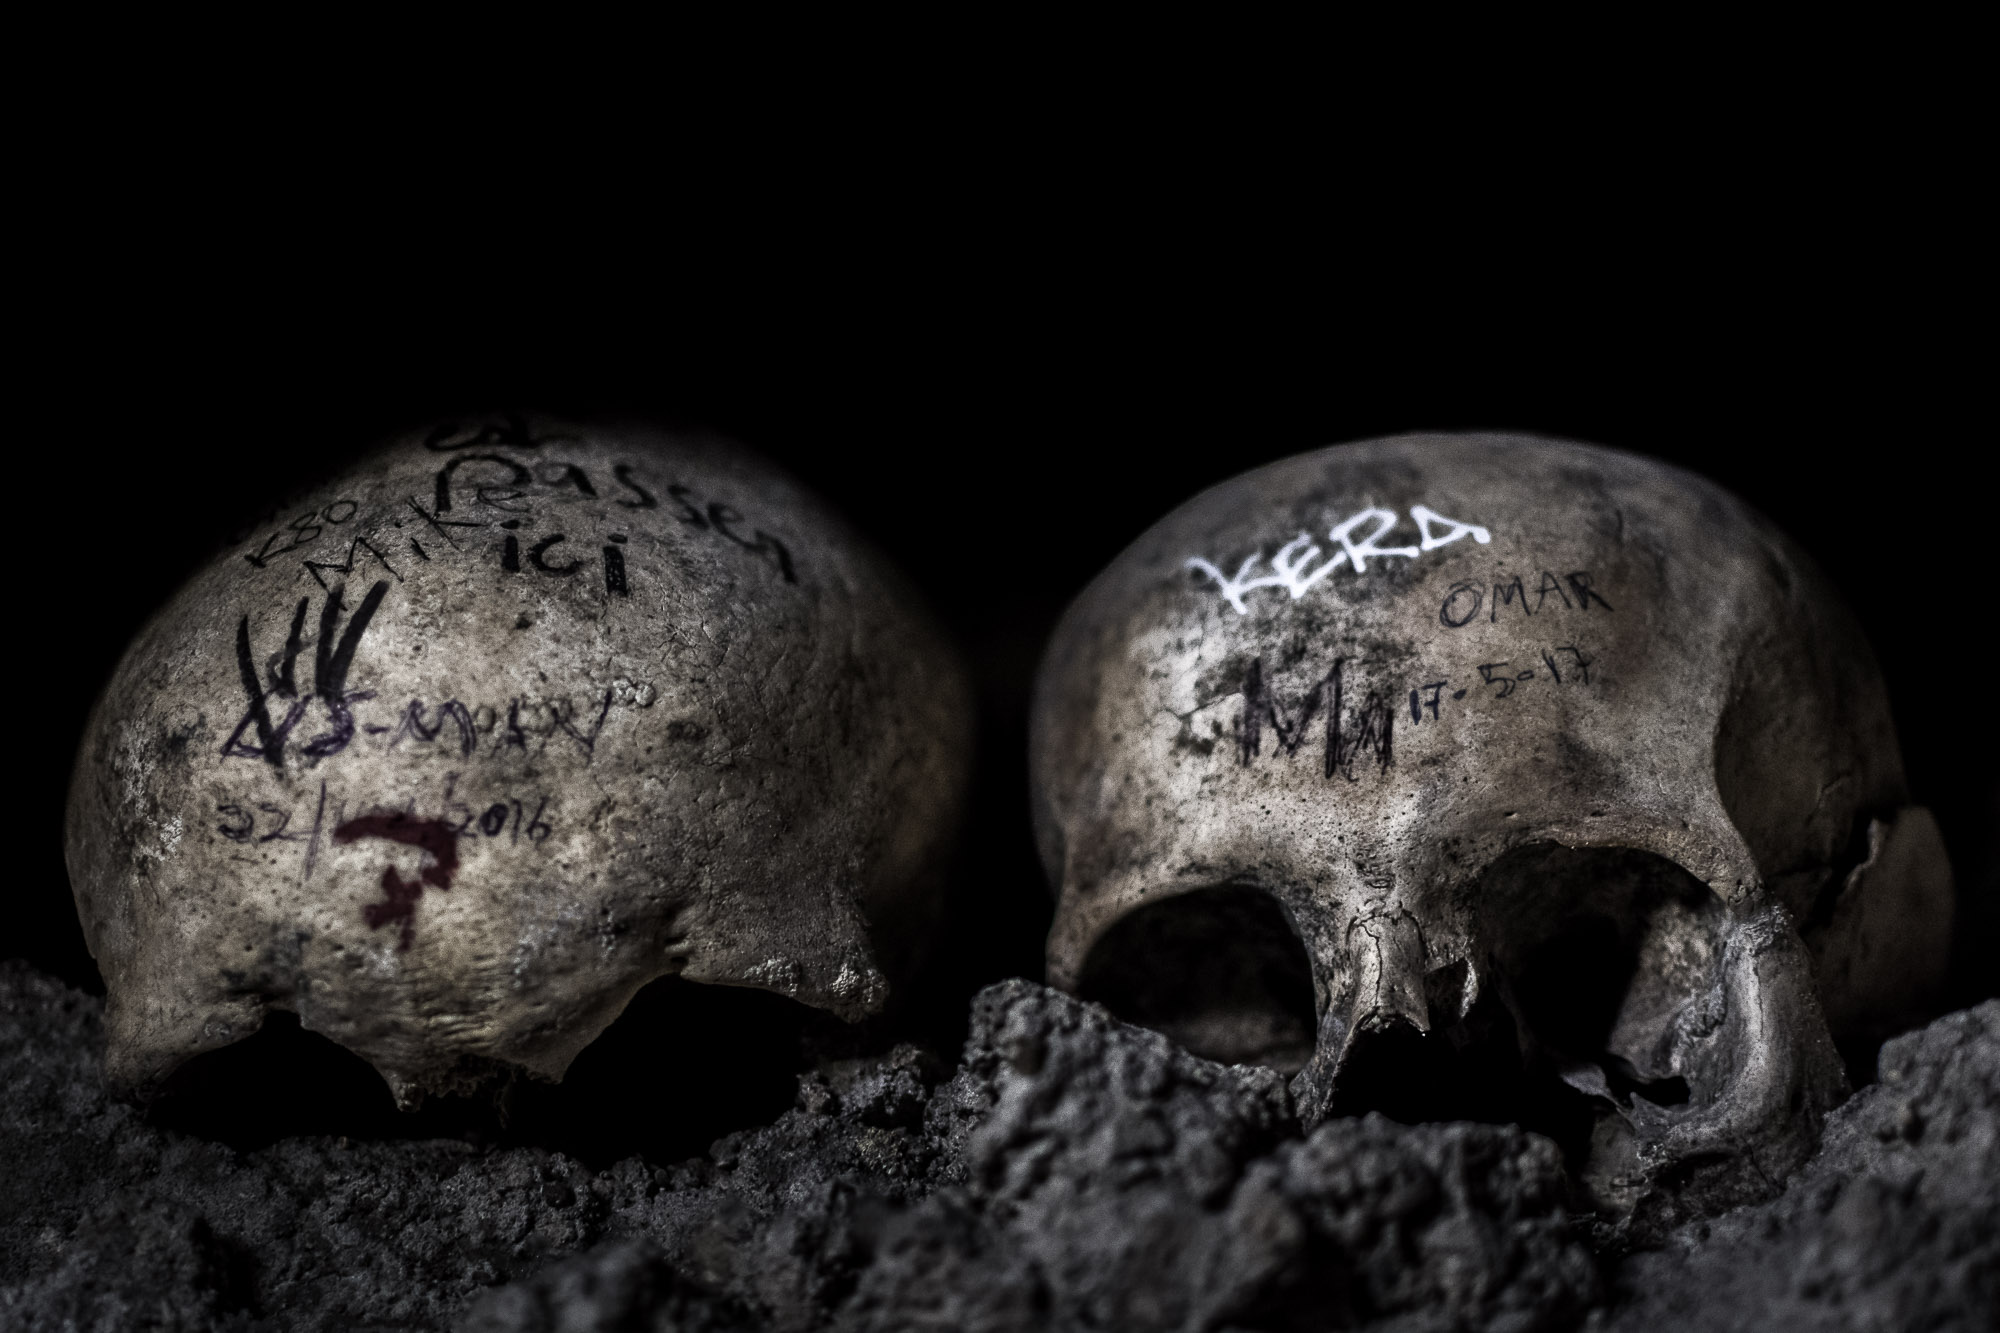 A pair of skulls, marked with graffiti, in the Catacombs of Paris.